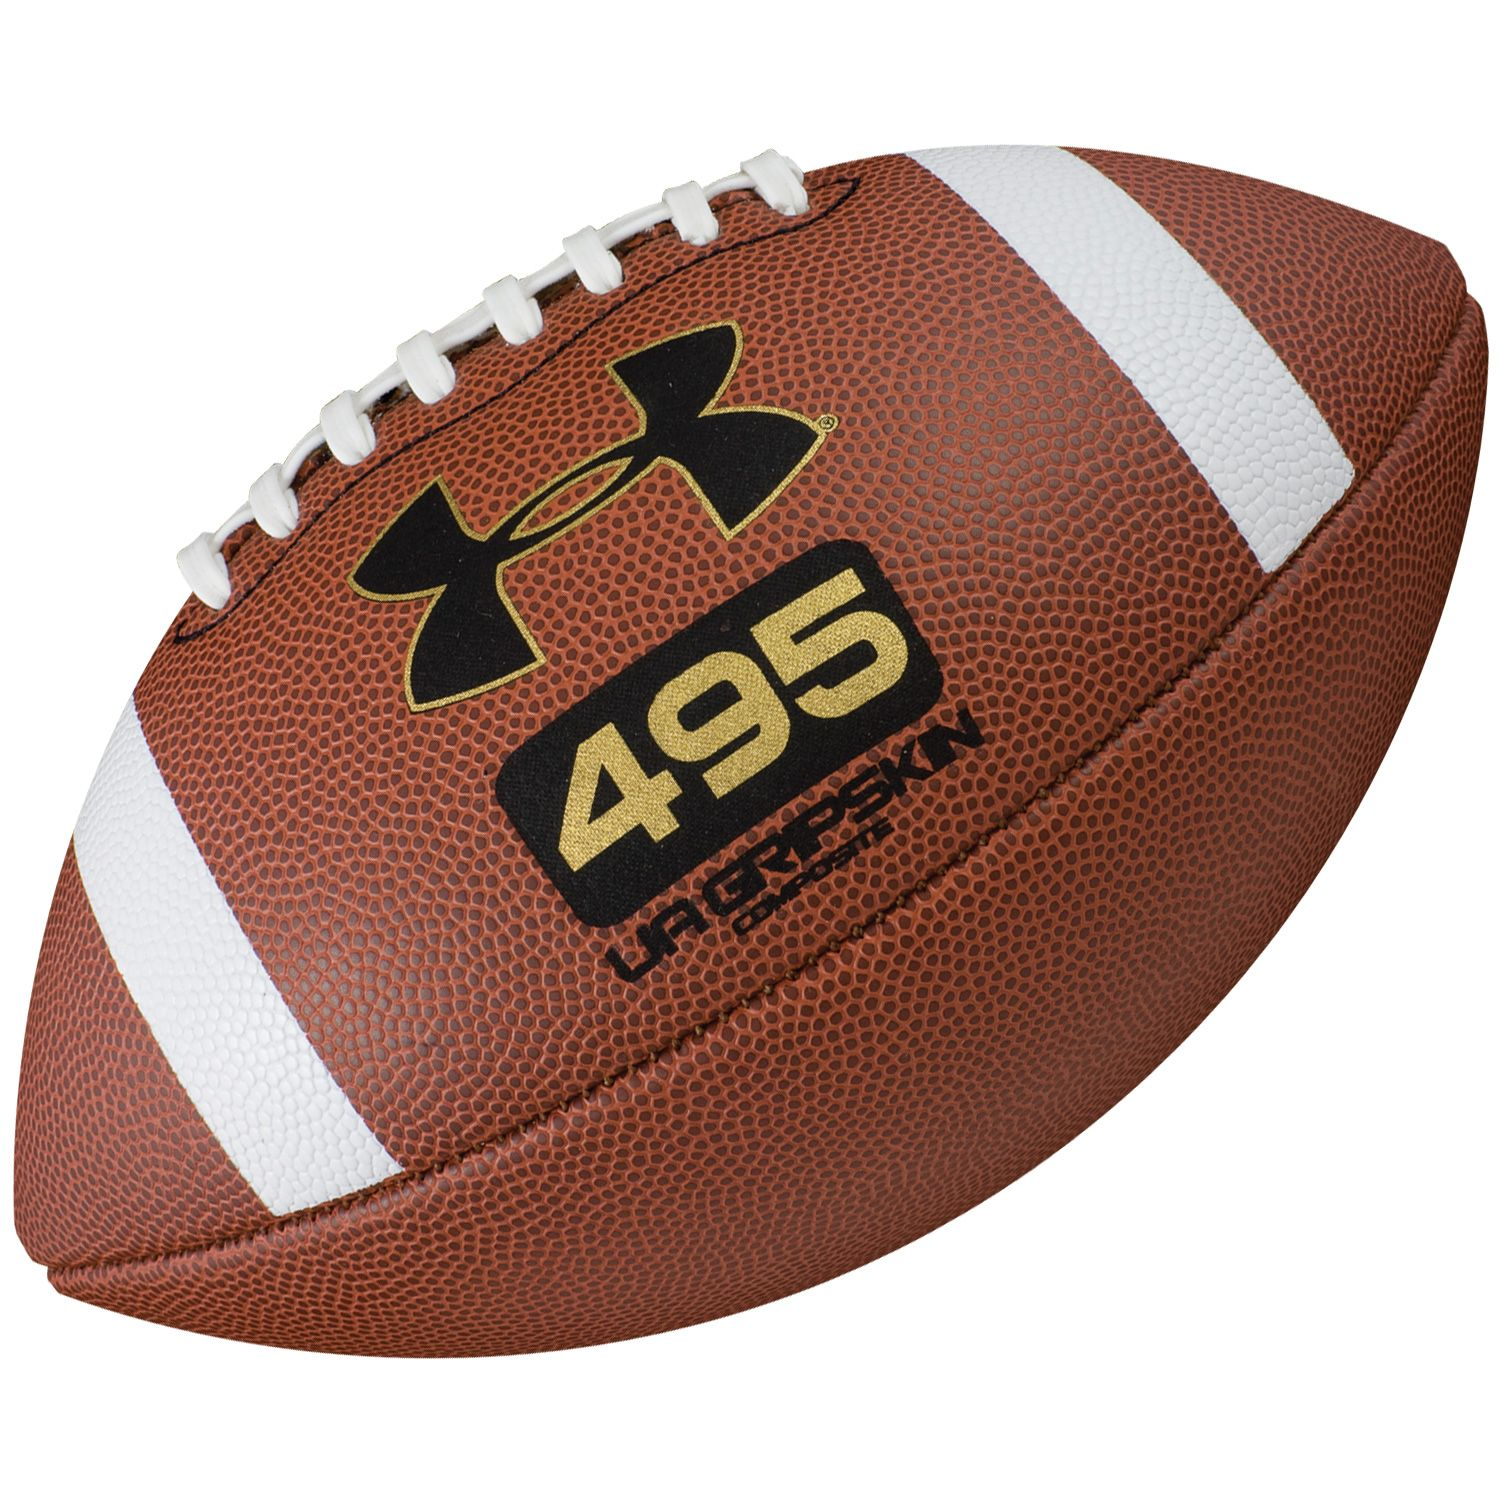 official size footballs u0027s sporting goods